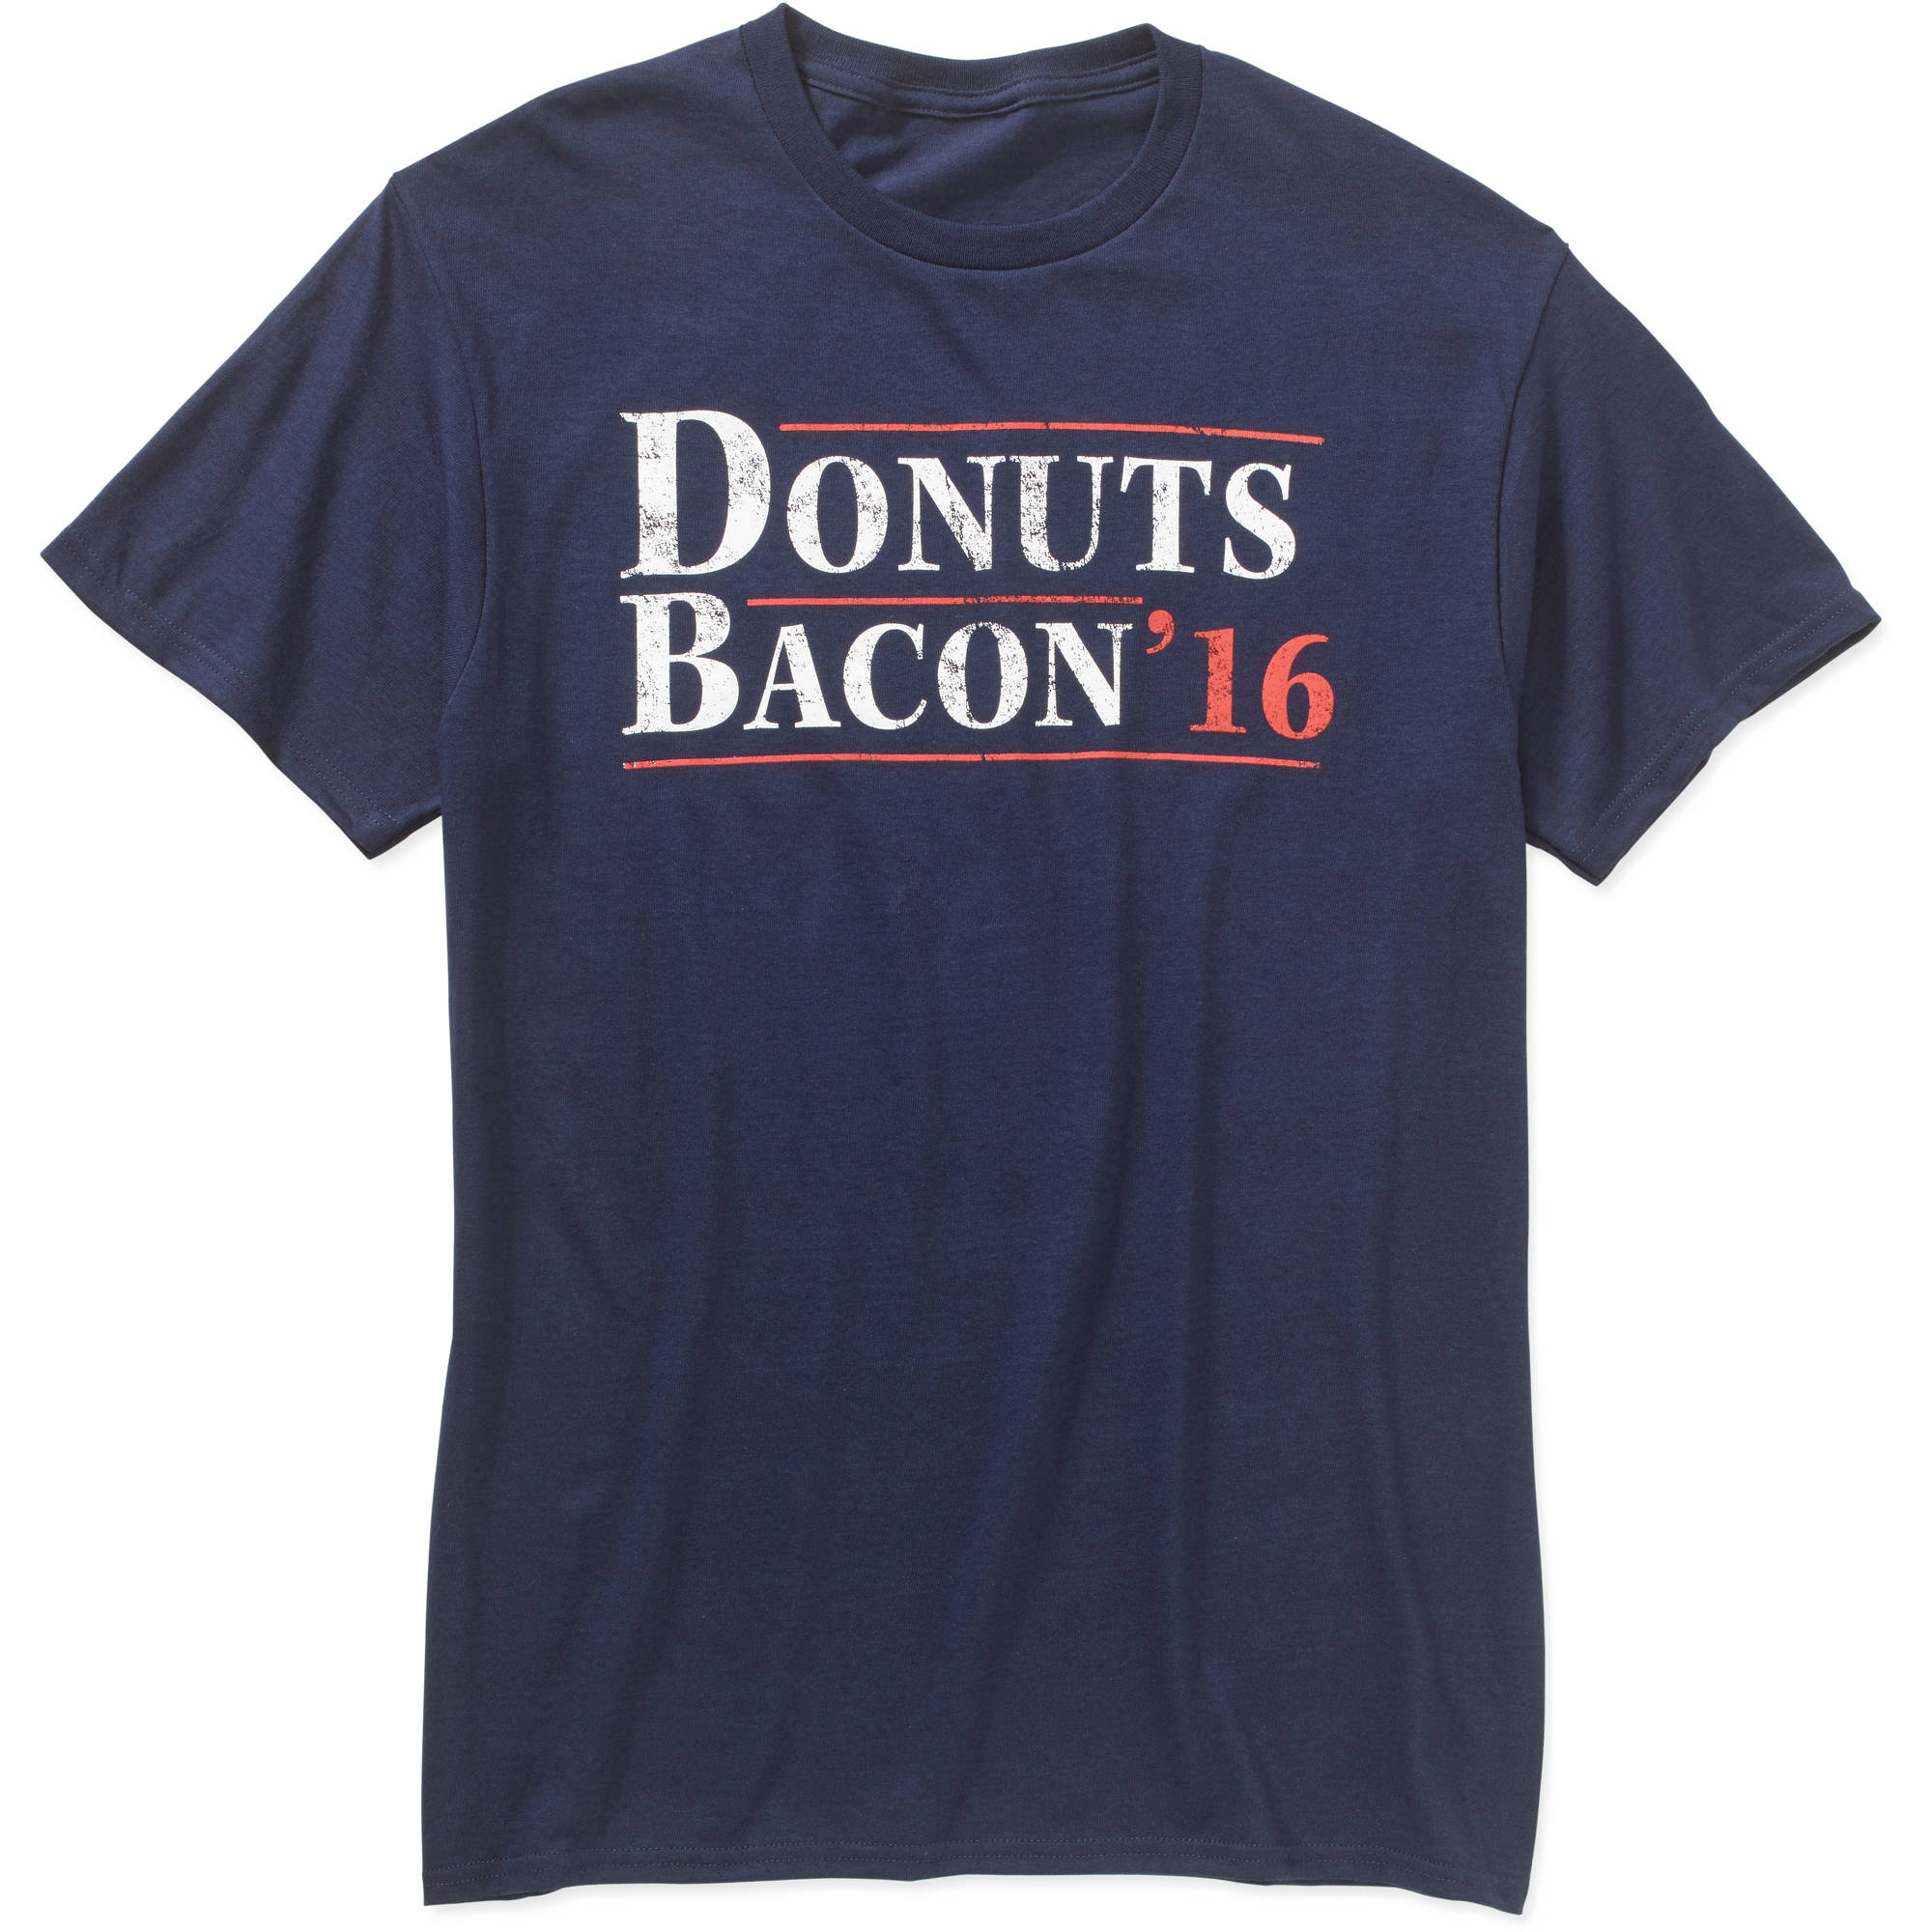 Donuts Bacon '16 Campaign Big Men's Graphic Tee